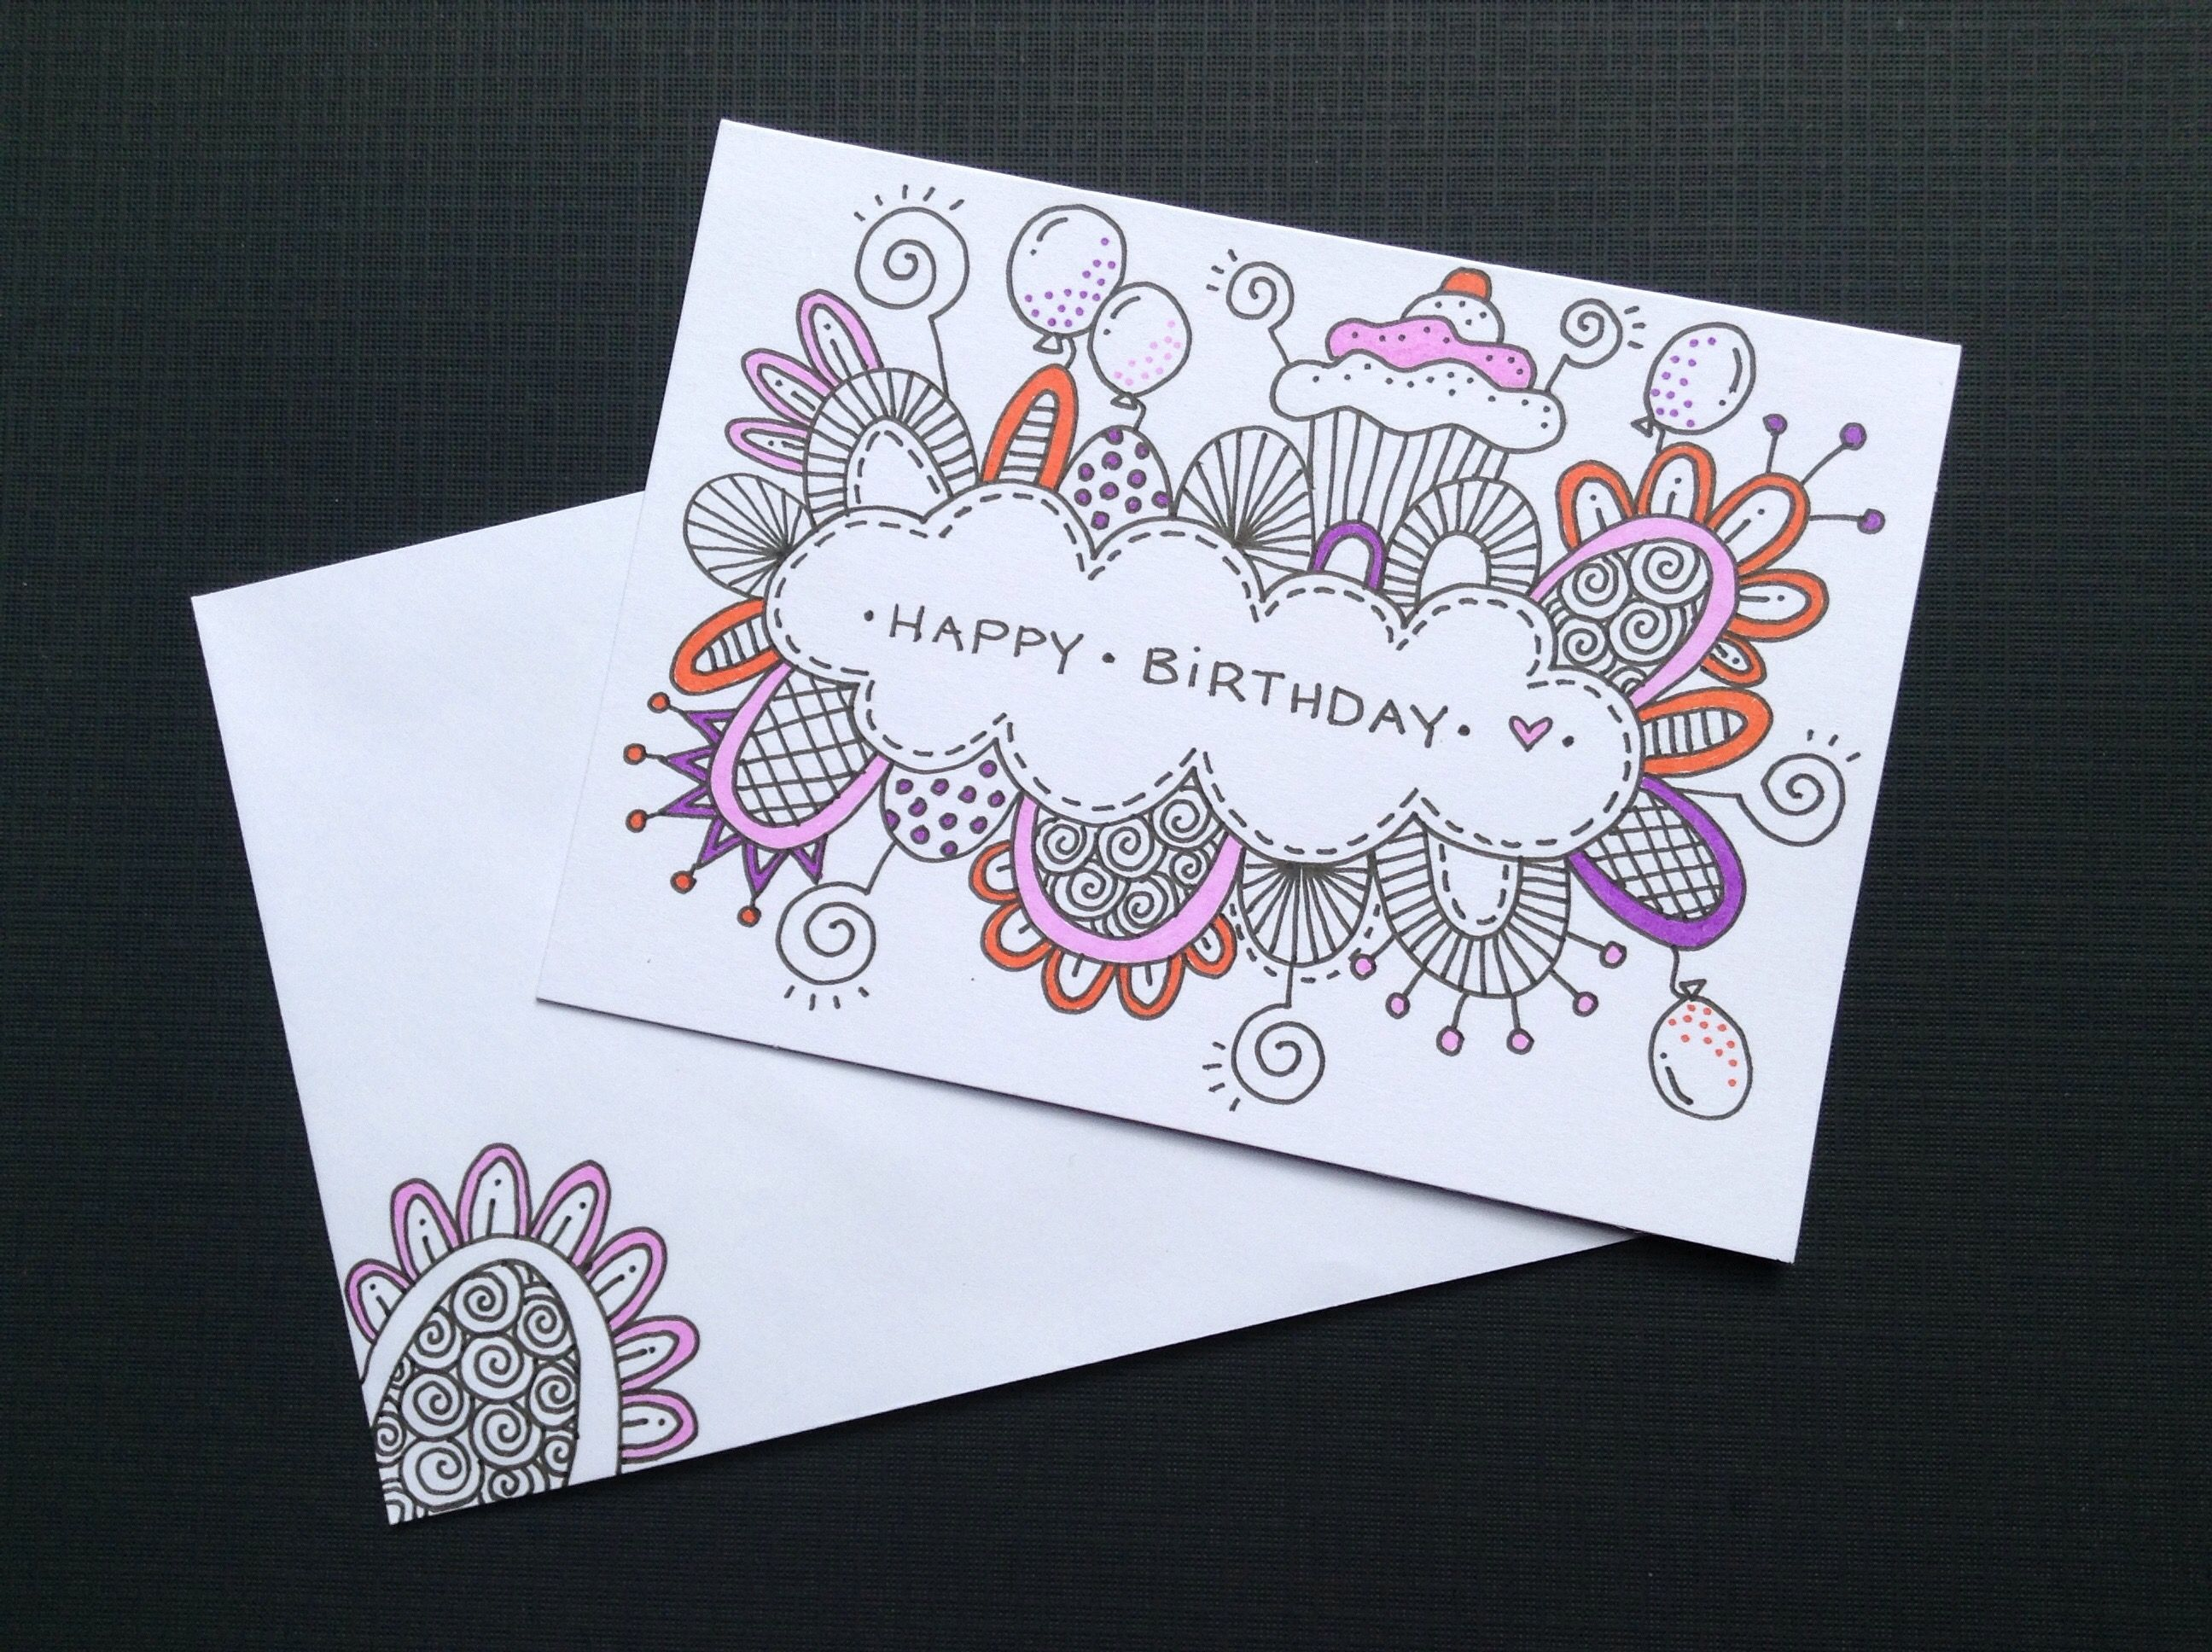 Hand Drawn Birthday Cards Crafts Pinterest Cards Birthday